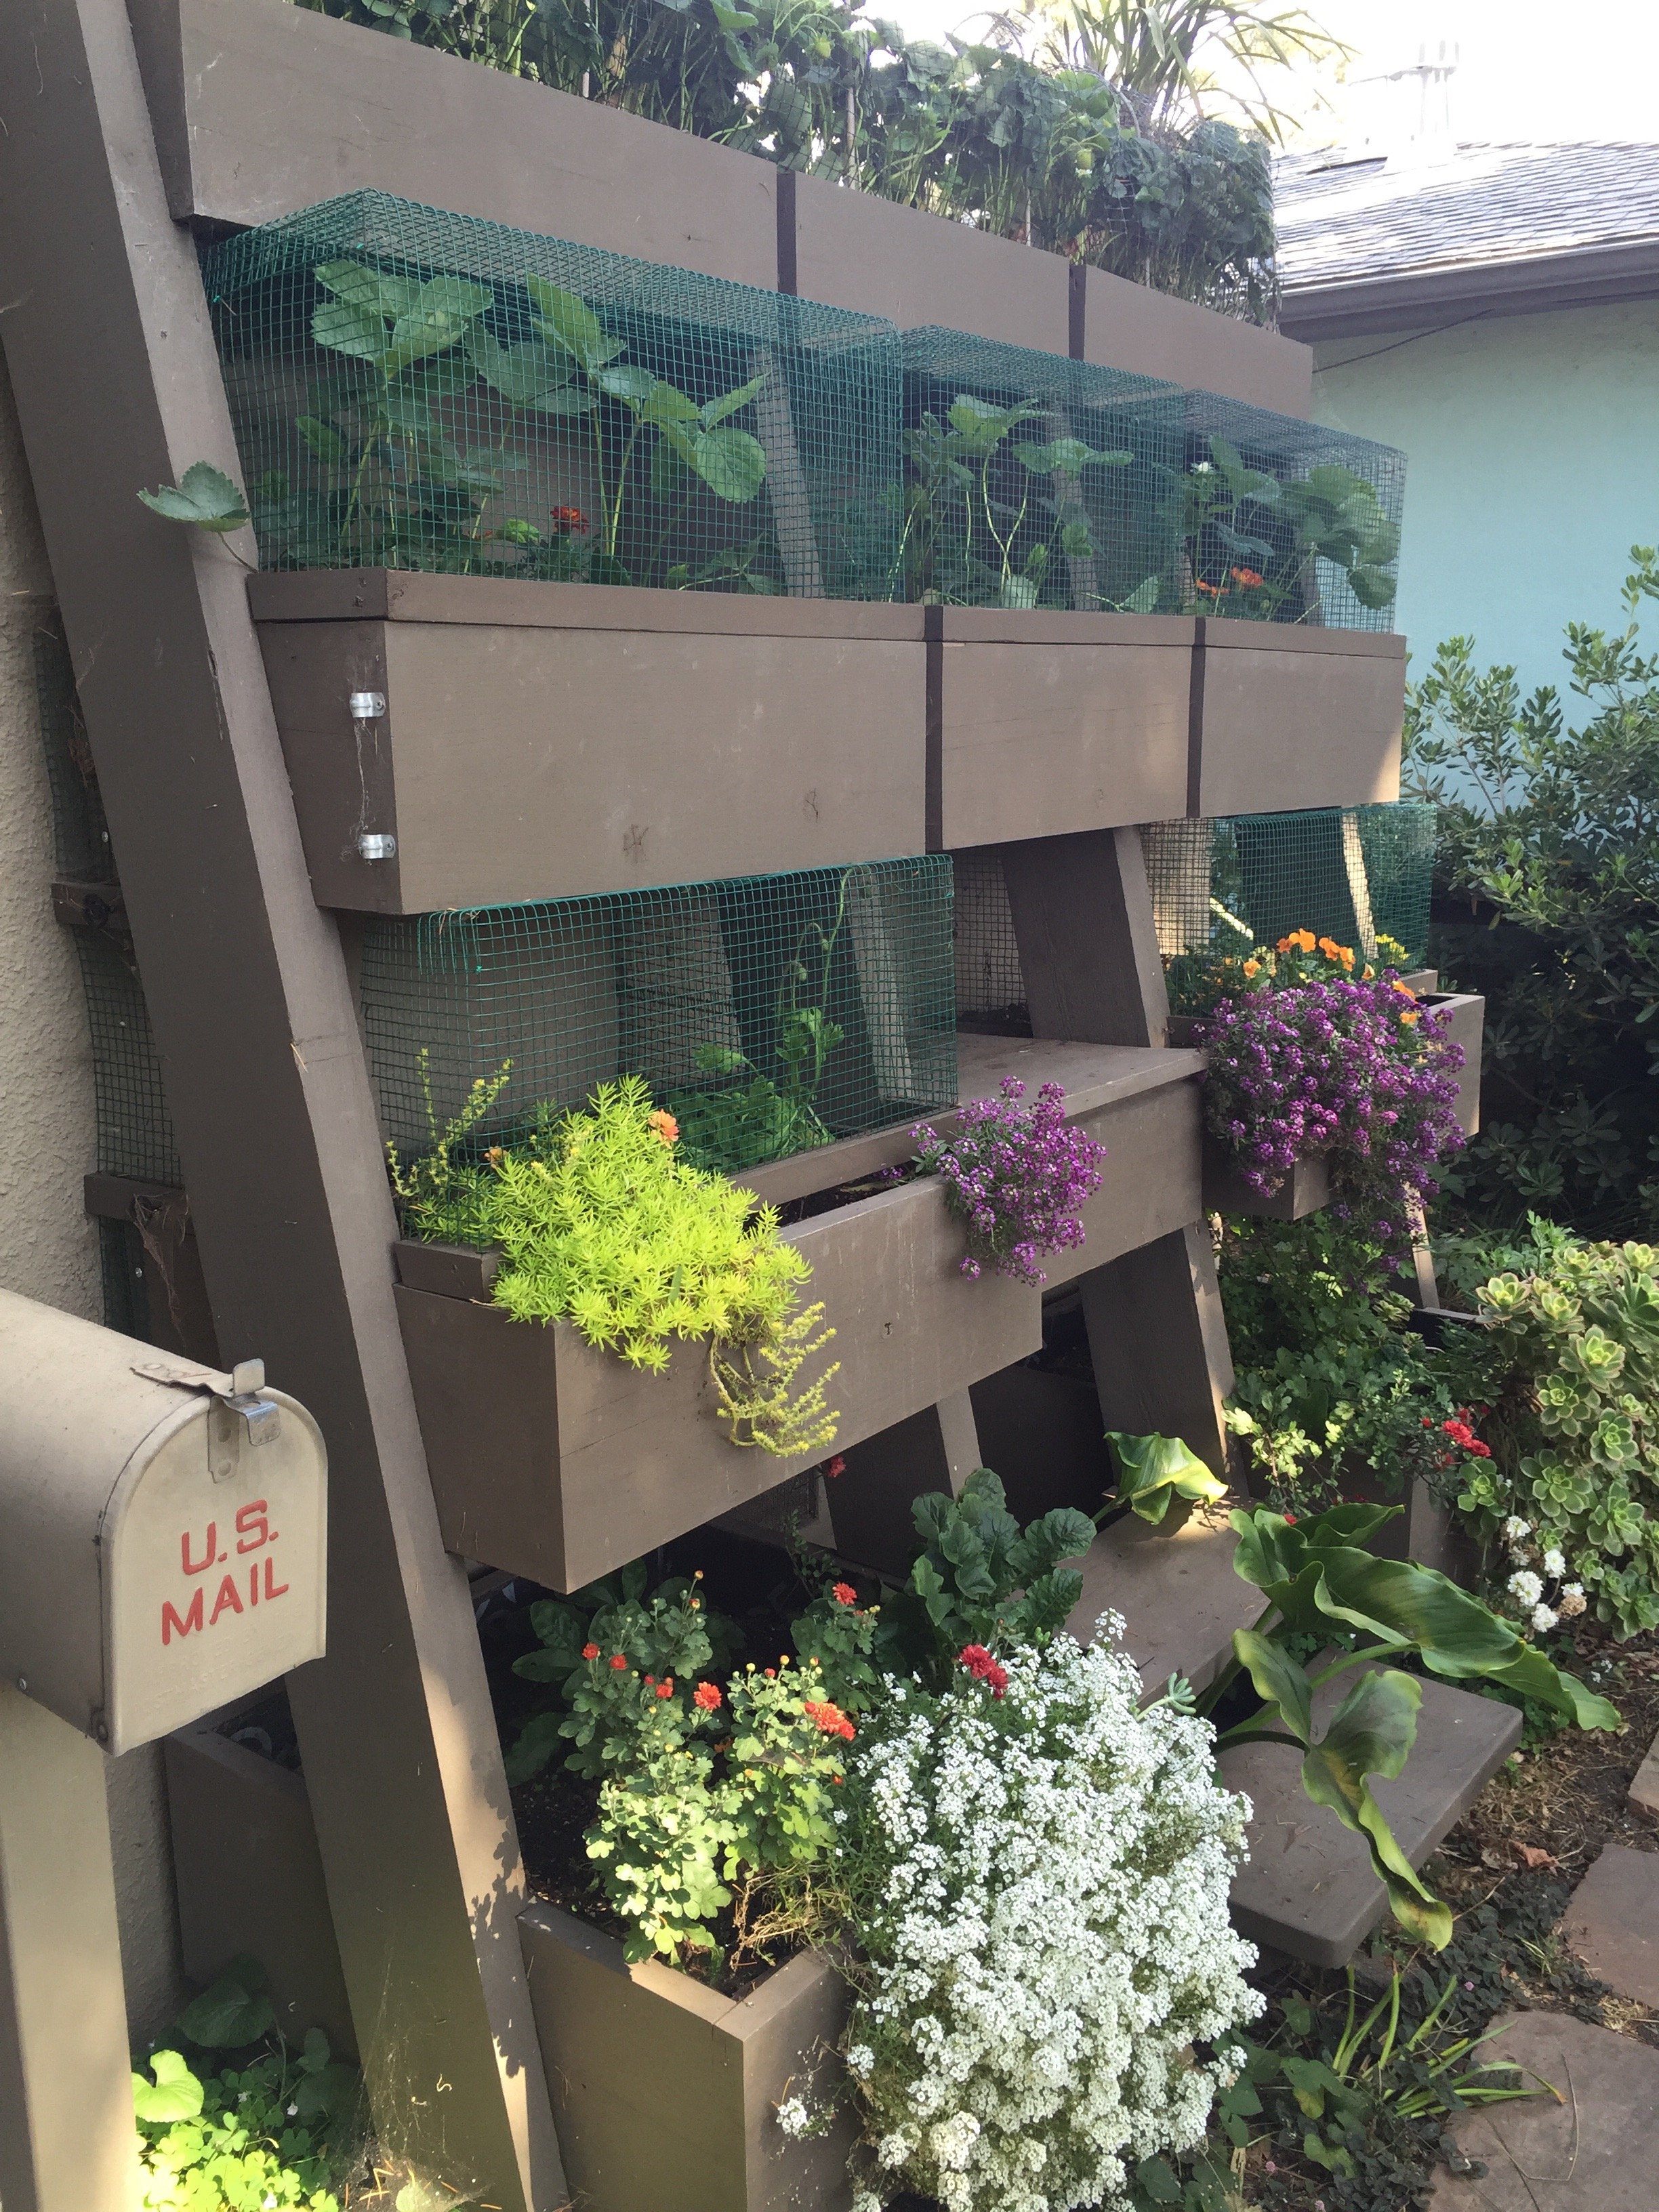 How about this cool vertical planter?